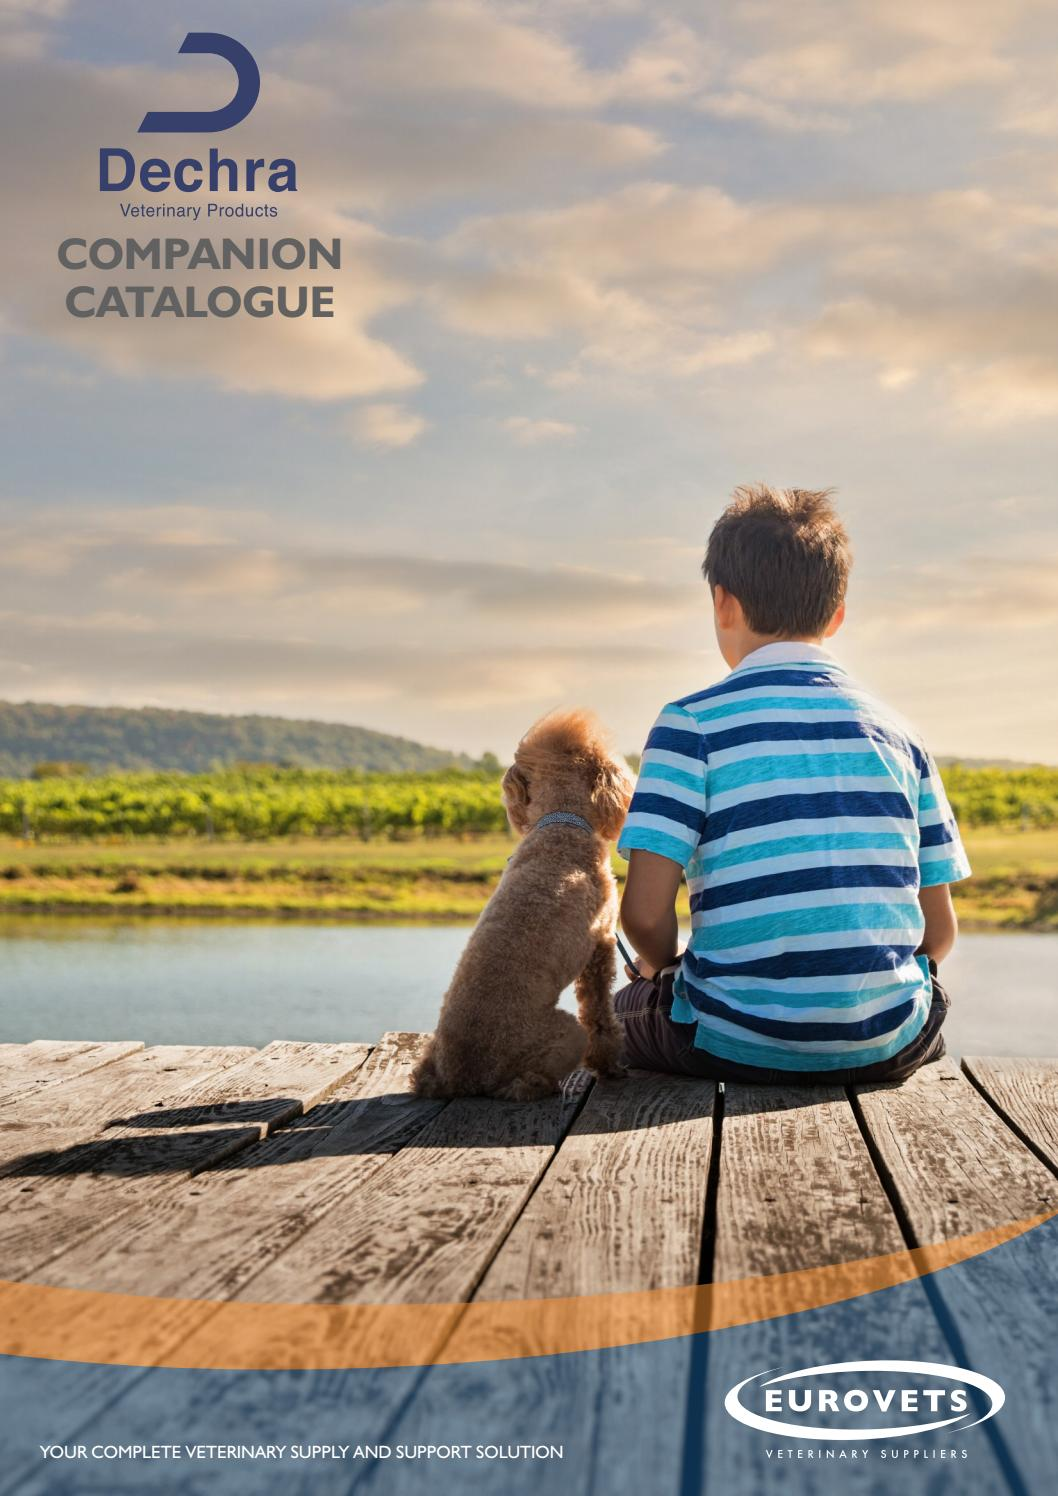 Dechra Companion Animal Catalogue by Eurovets Veterinary